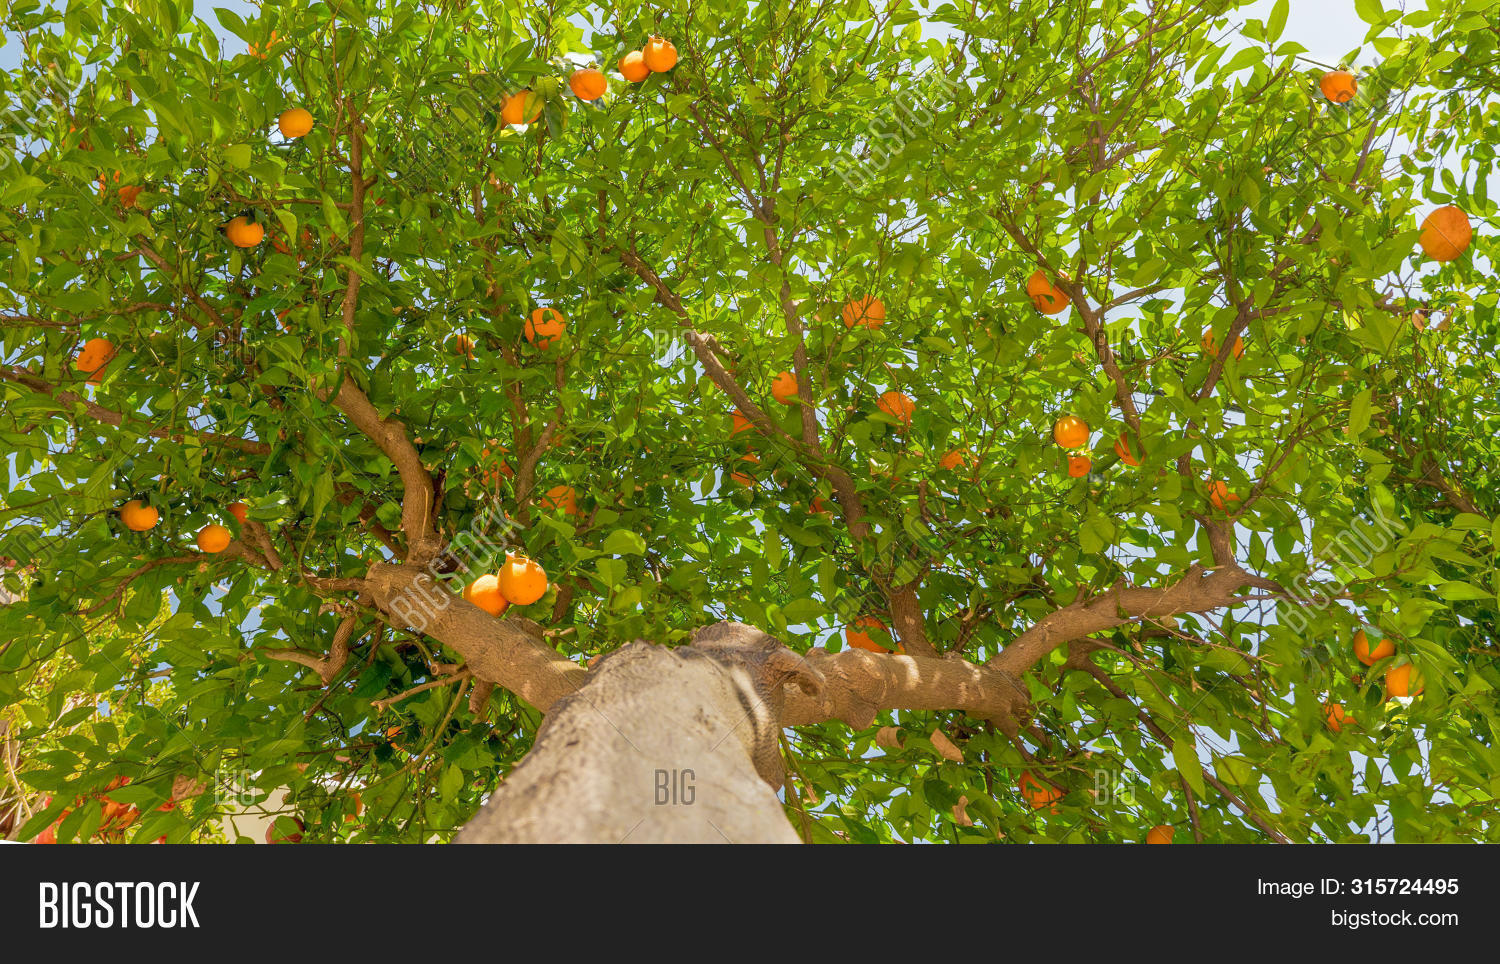 agriculture,background,branches,care,citrus,climate,concept,farm,farming,favorable,fruits,garden,grow,growing,harvest,harvesting,high,huge,leaf,leaves,lemons,moisturizing,nursing,orange,organic,plant,planting,production,ripe,smart,summer,summertime,tangerine,texture,travel,traveling,tree,trunk,vacation,yield